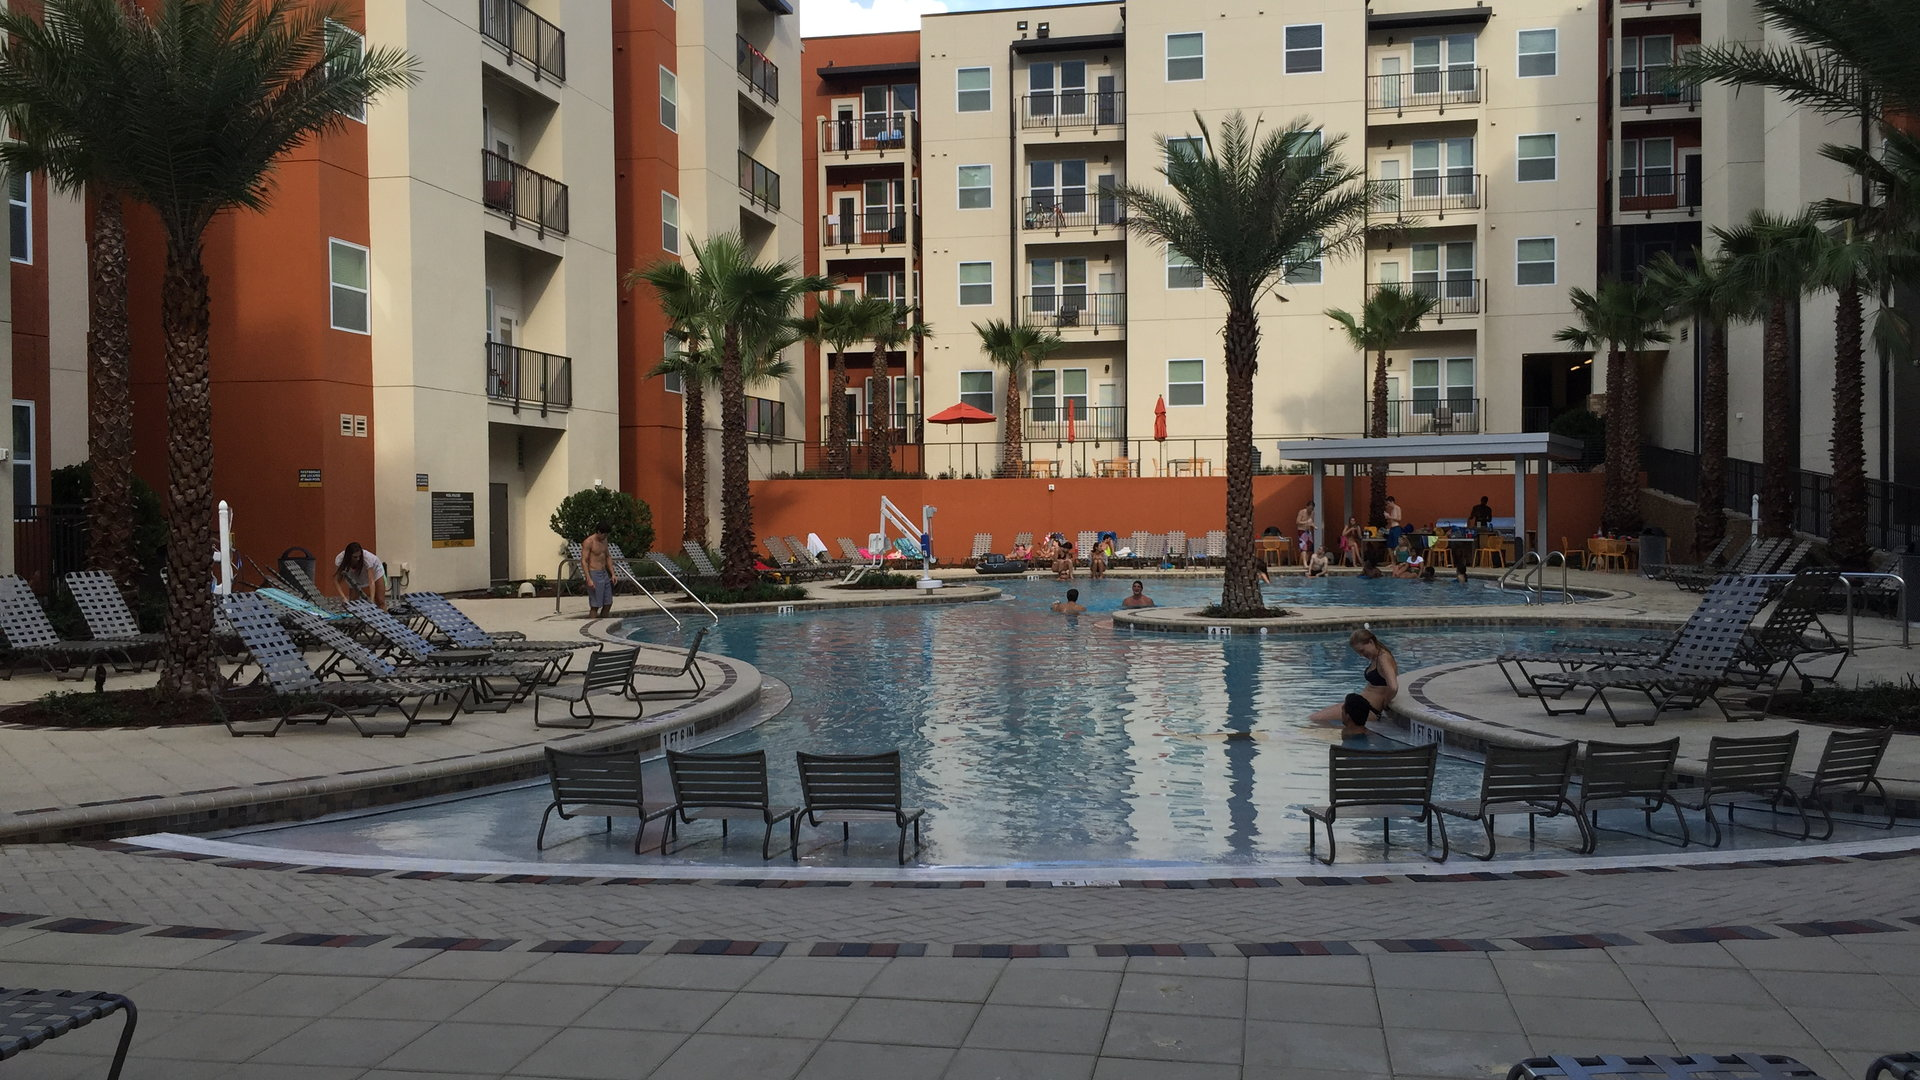 90 Apartments for Rent under $800 in Orlando, FL